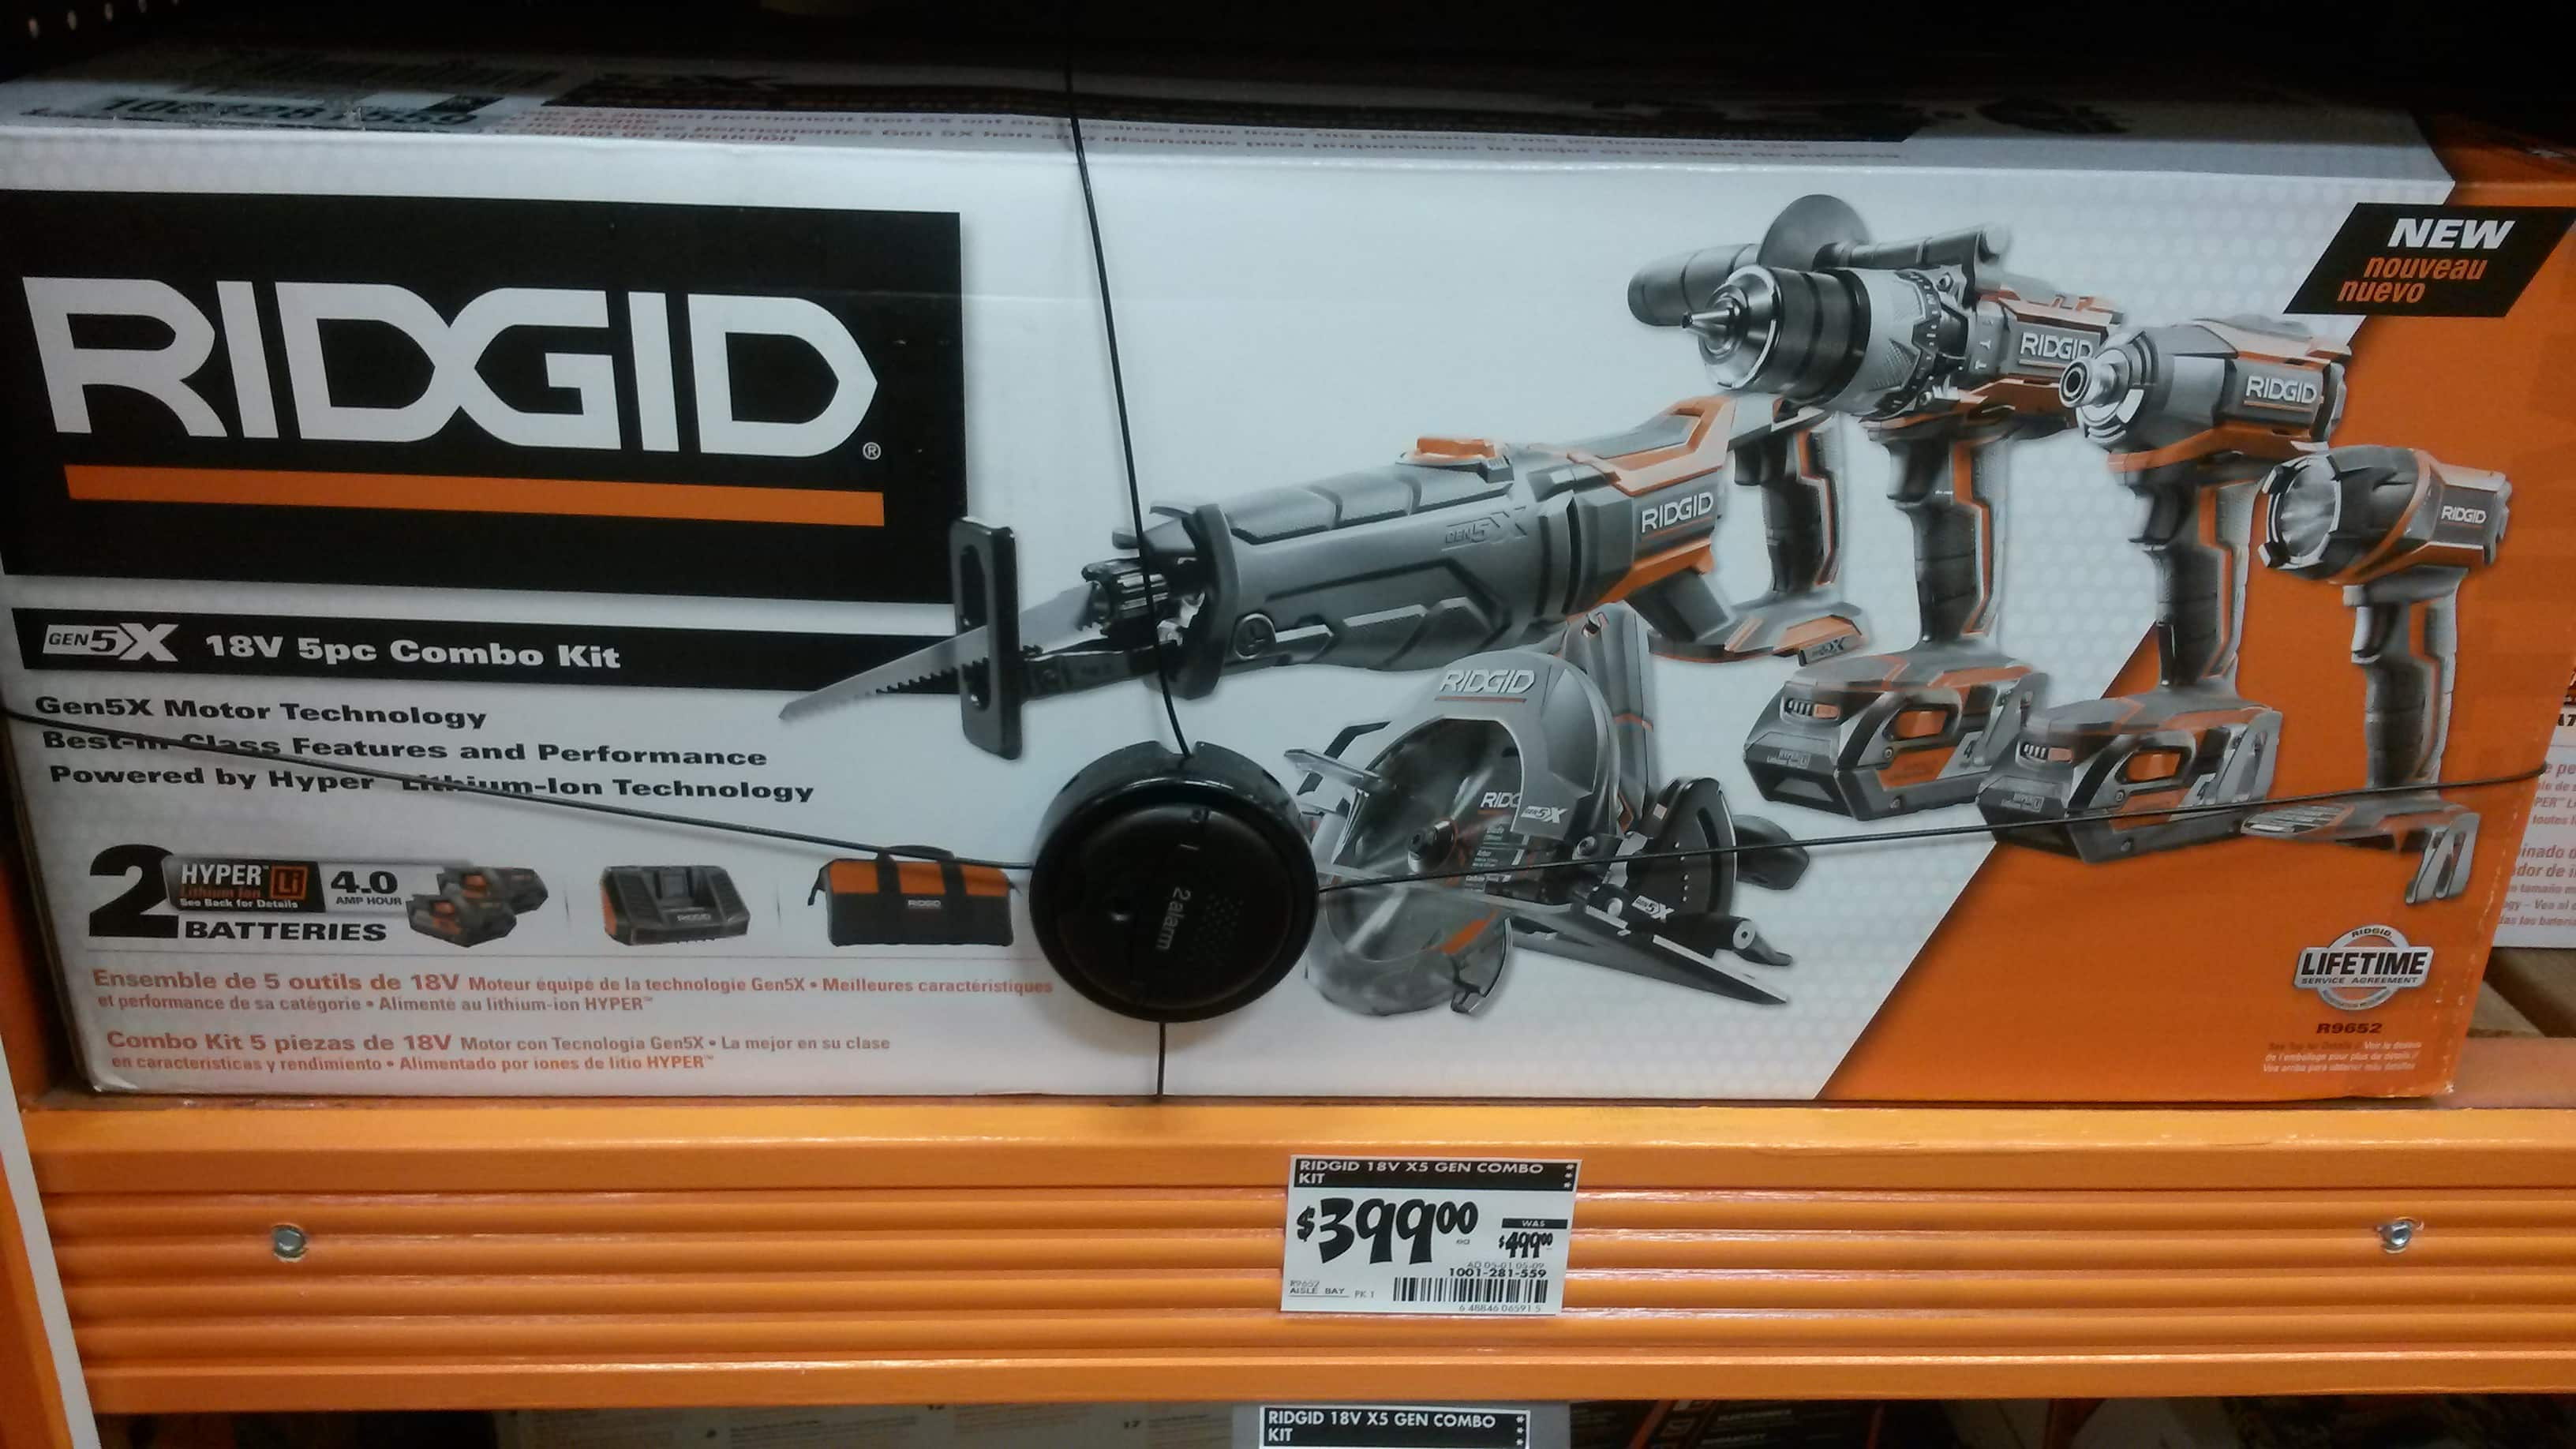 """RIDGID GEN5X Combo Kit (5 Power Tools) for $399 """"Special Introductory Offer"""" (or $320 w/Harbor Freight coupon, ymmv) at Home Depot"""